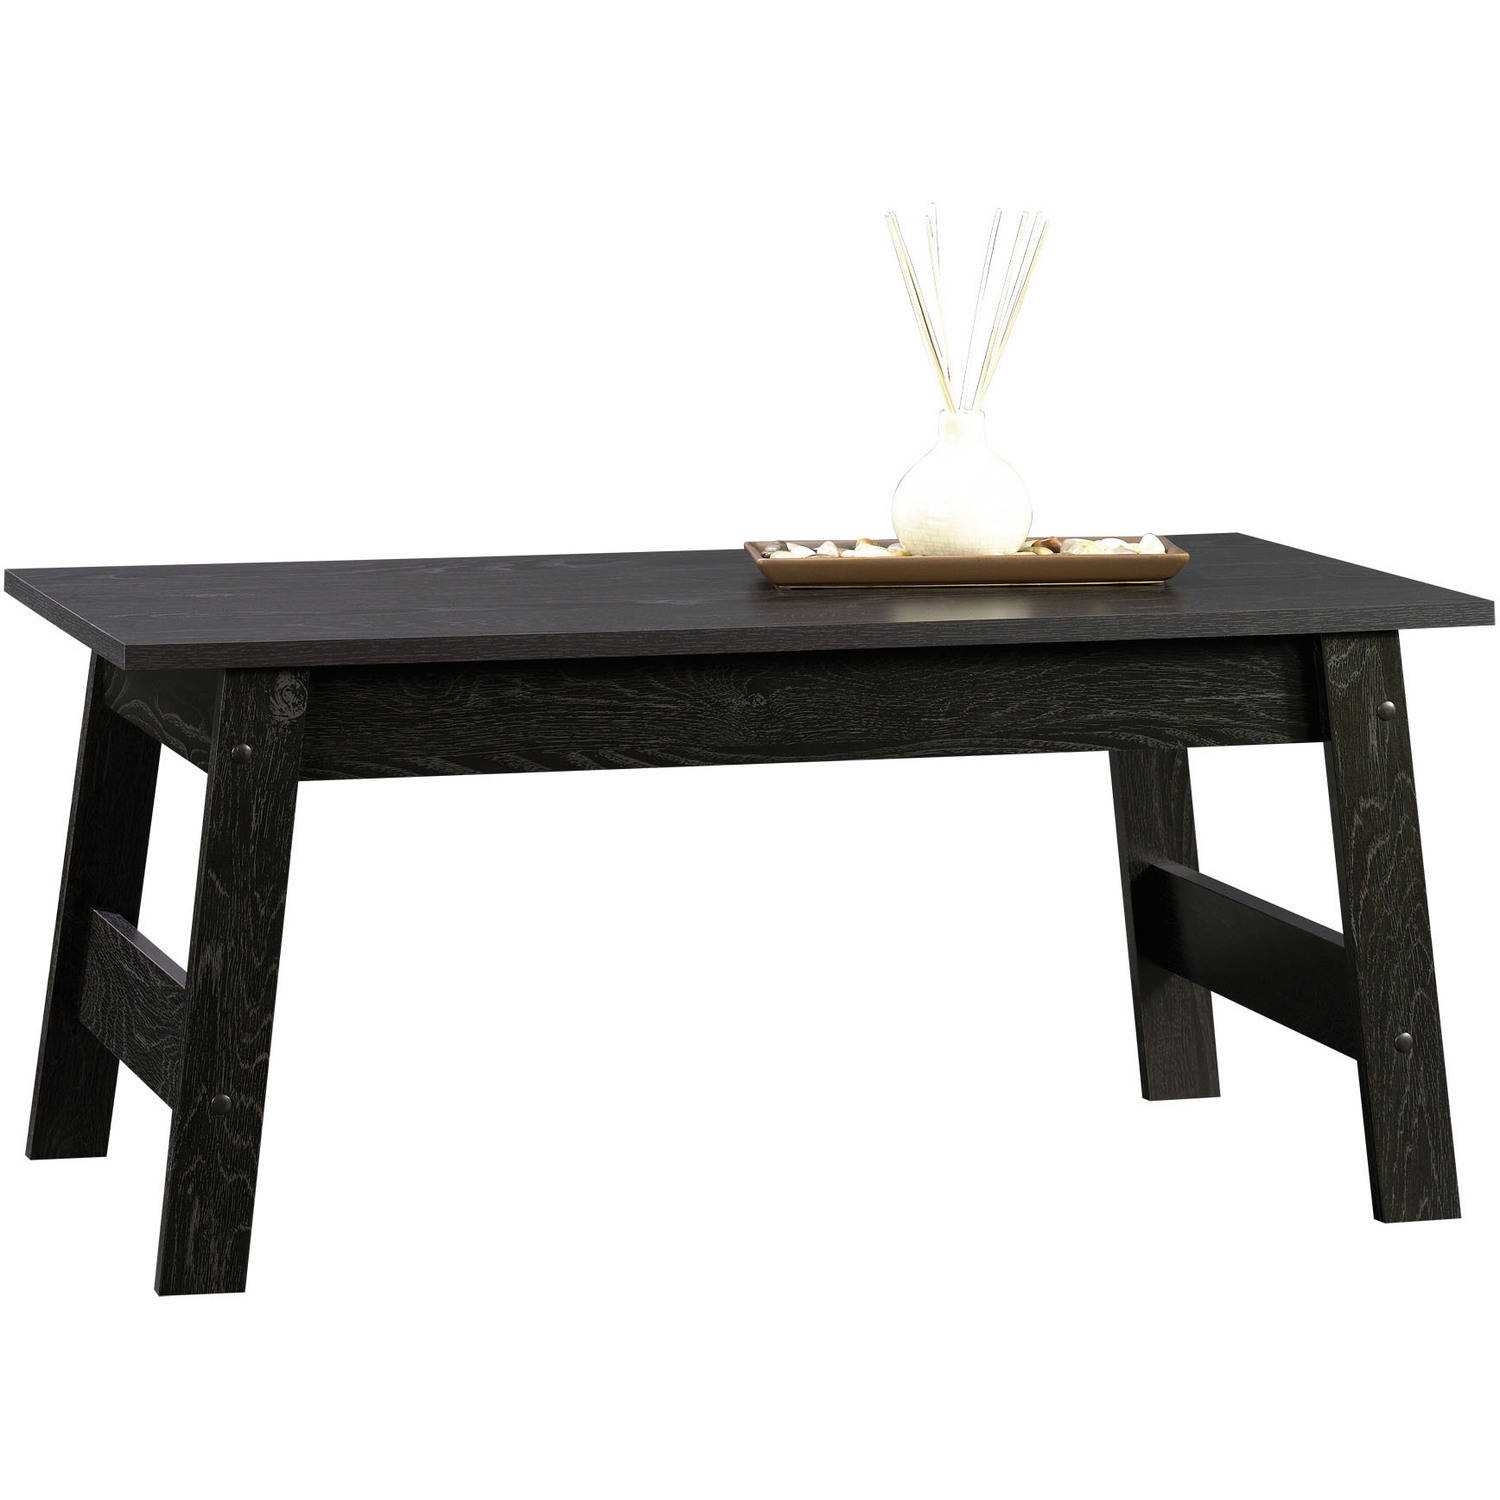 Sauder Beginnings Collection Coffee Table BlackWalmartcom